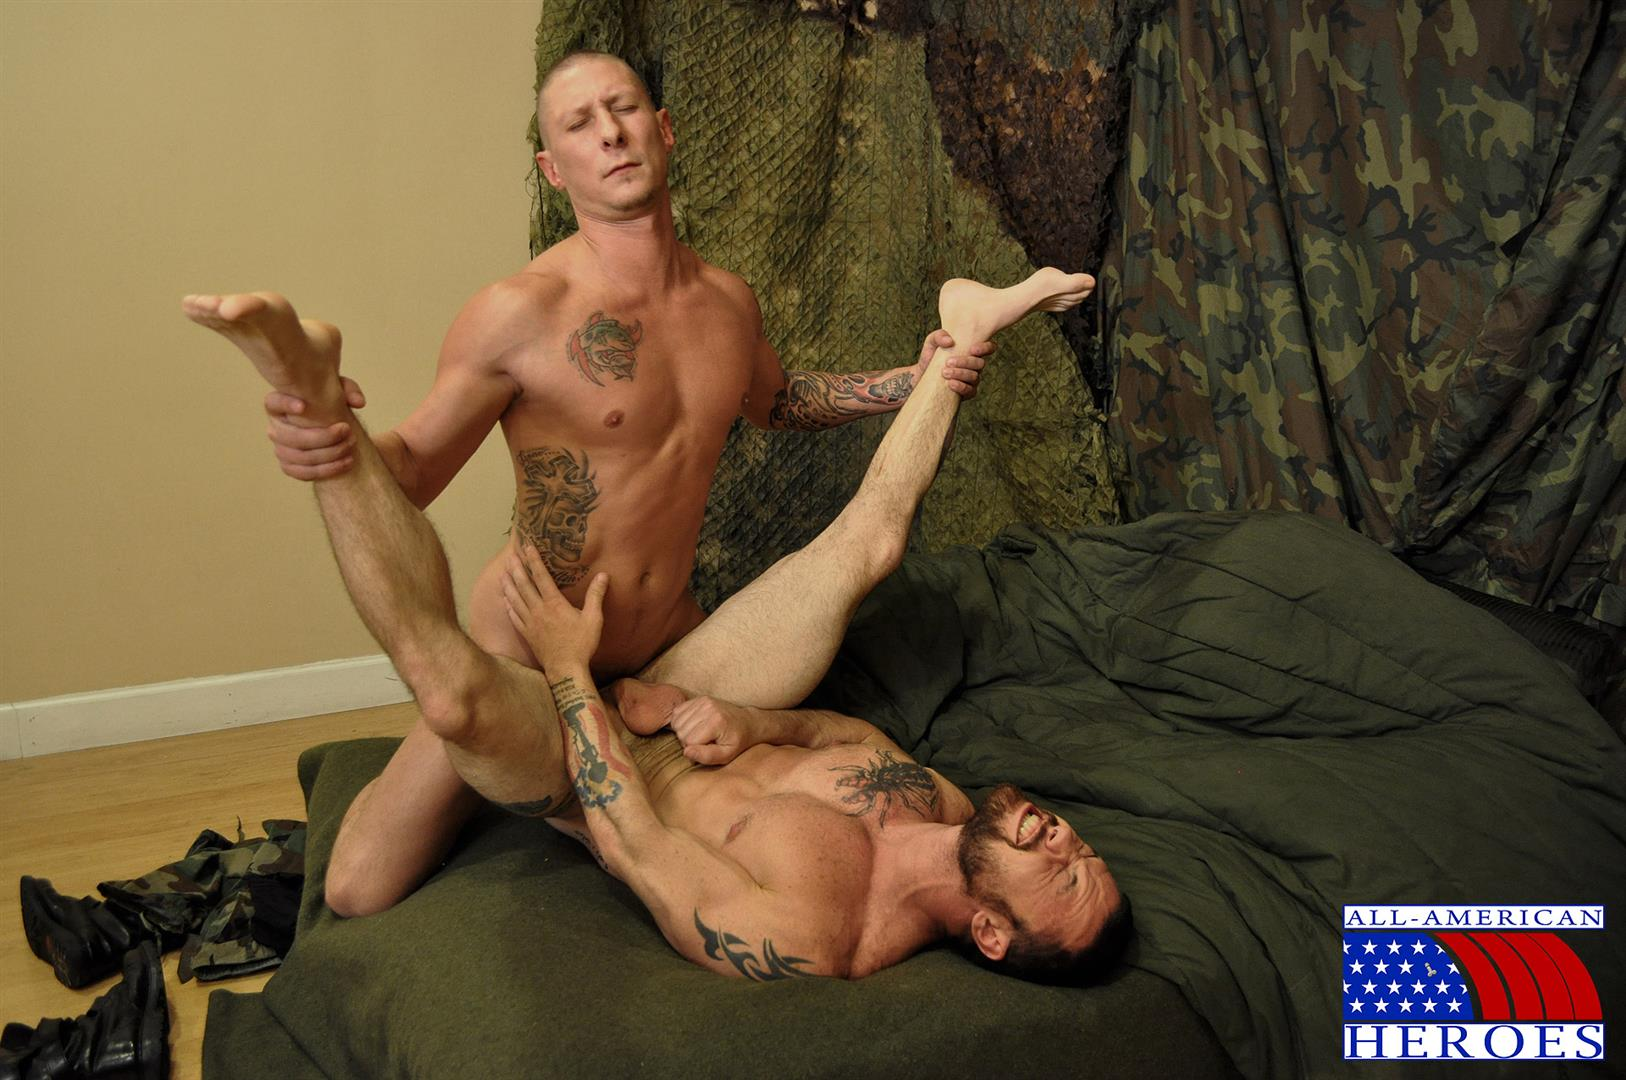 all american guys gay porn site